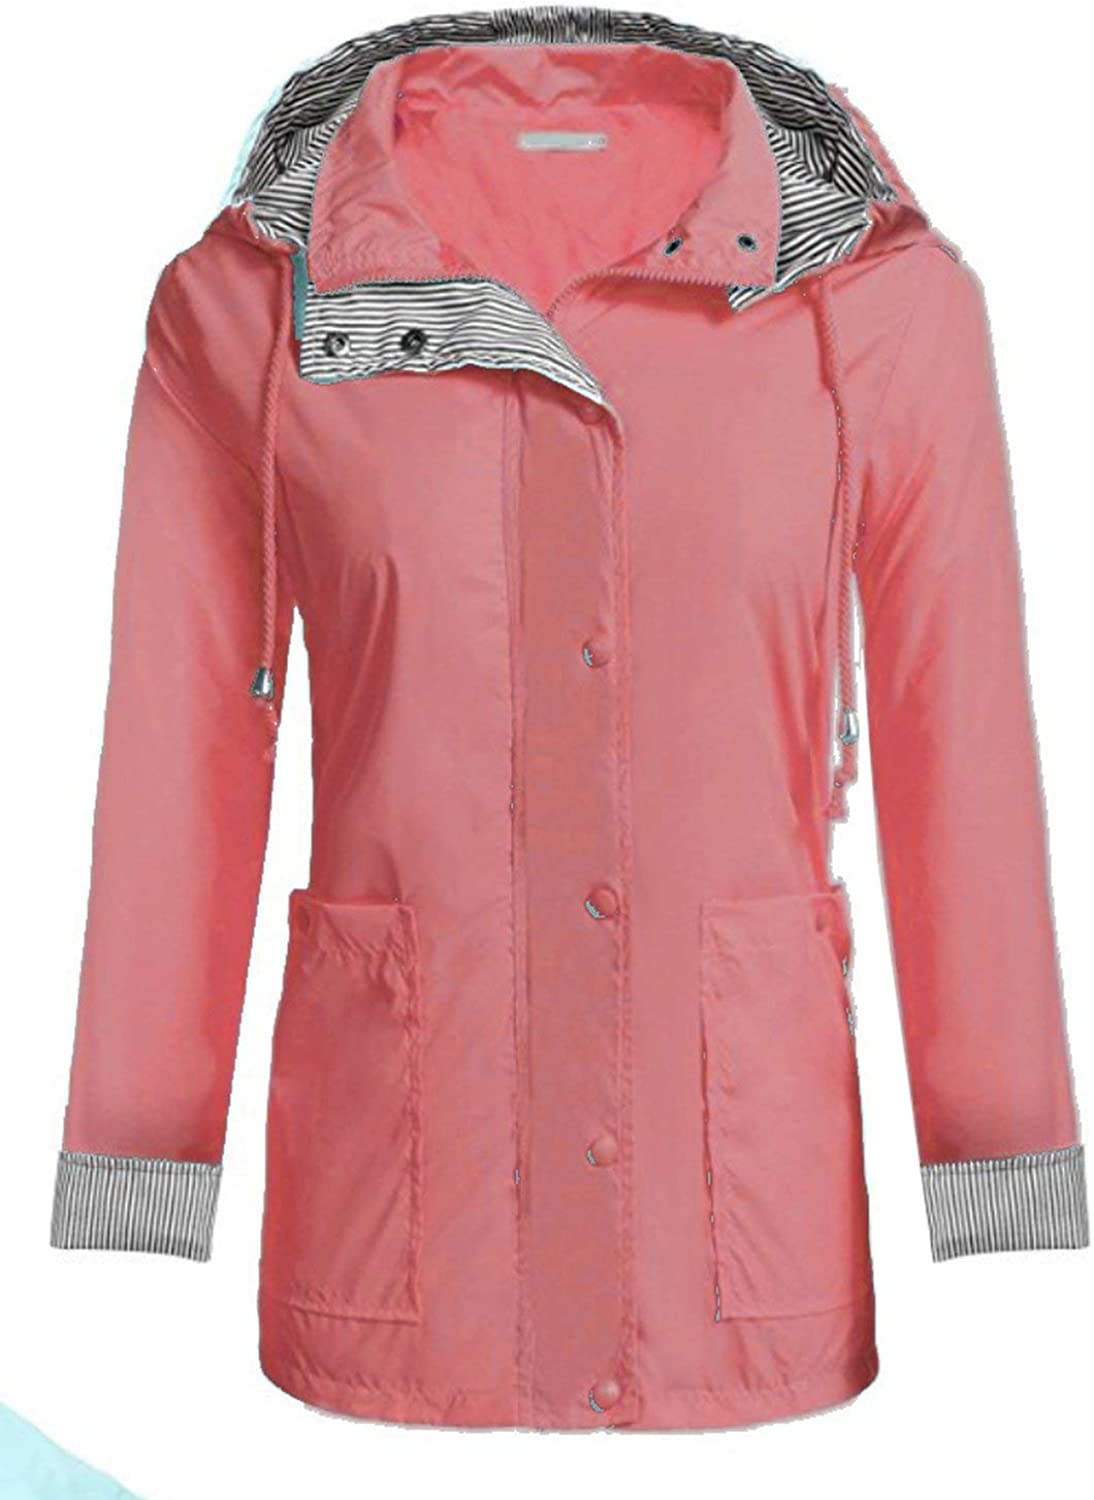 Isabelvictoria Lightweight Women Hooded Raincoat with 2 Big Pockets Long Sleeve Waterproof Zipper Rain Jacket Outdoor Rainwear  orange Pink XL